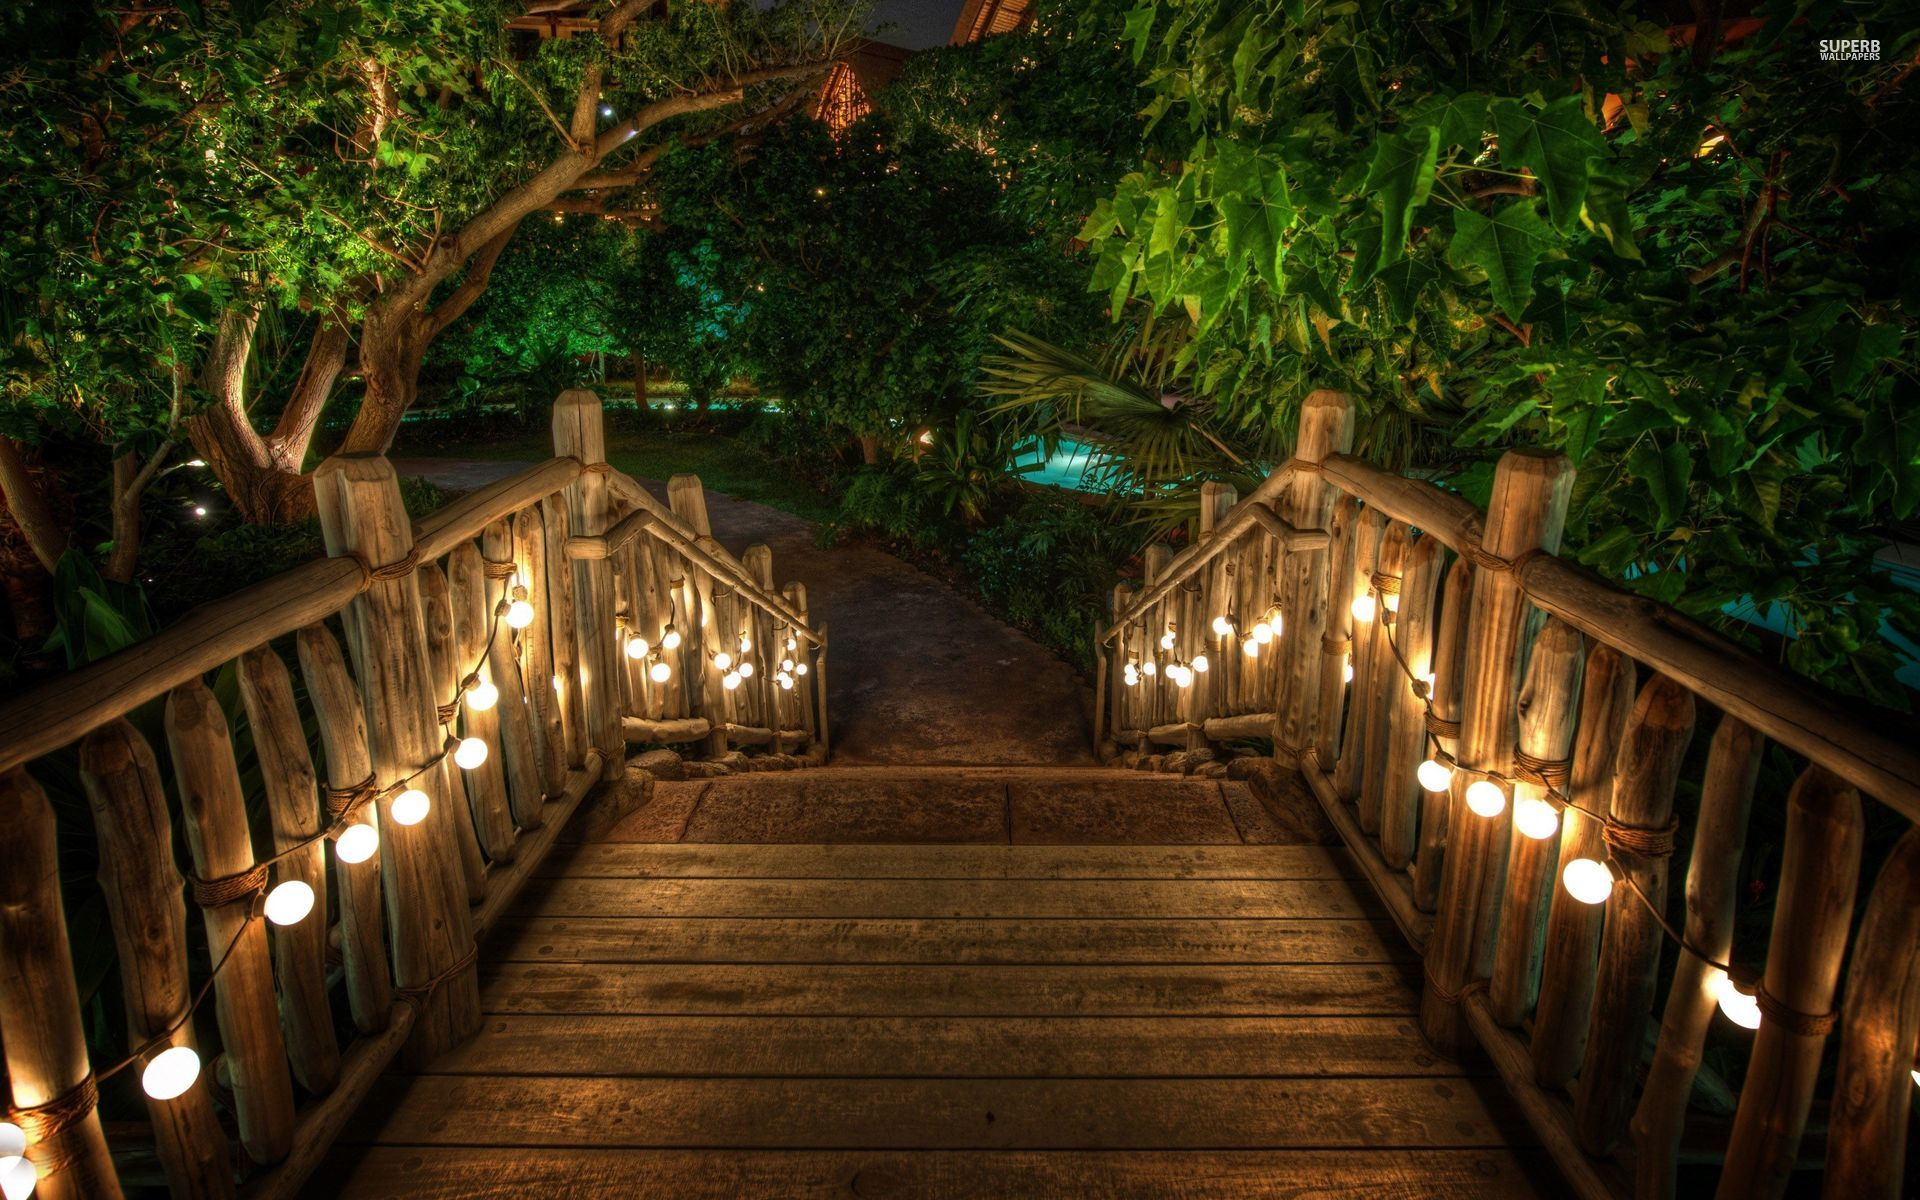 Lit Stairs Tropical Resort Wallpapers Lit Stairs